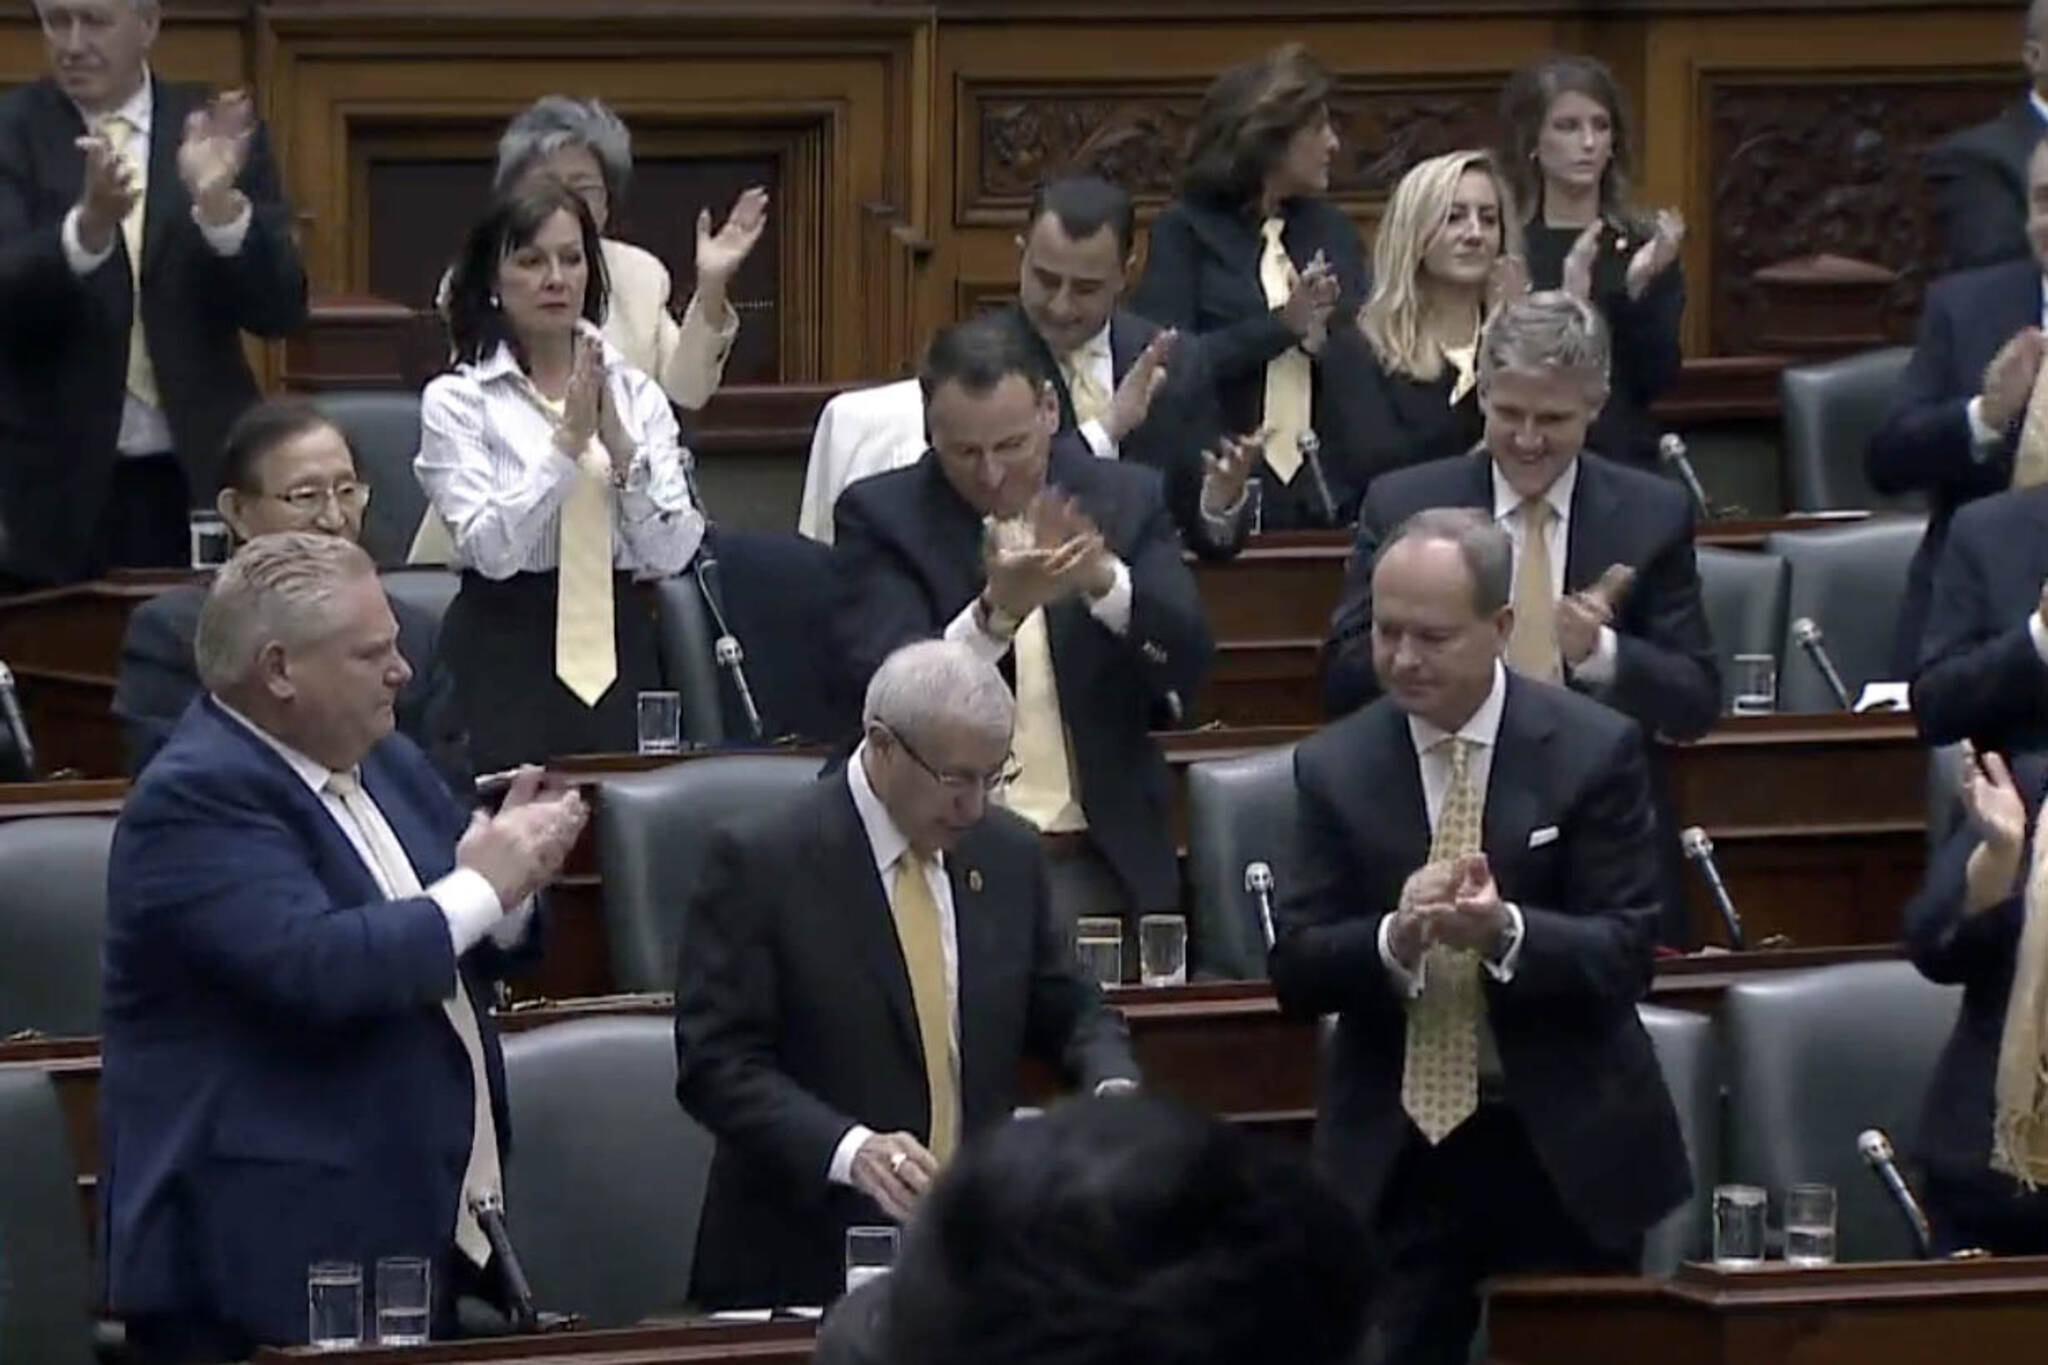 doug ford standing ovation